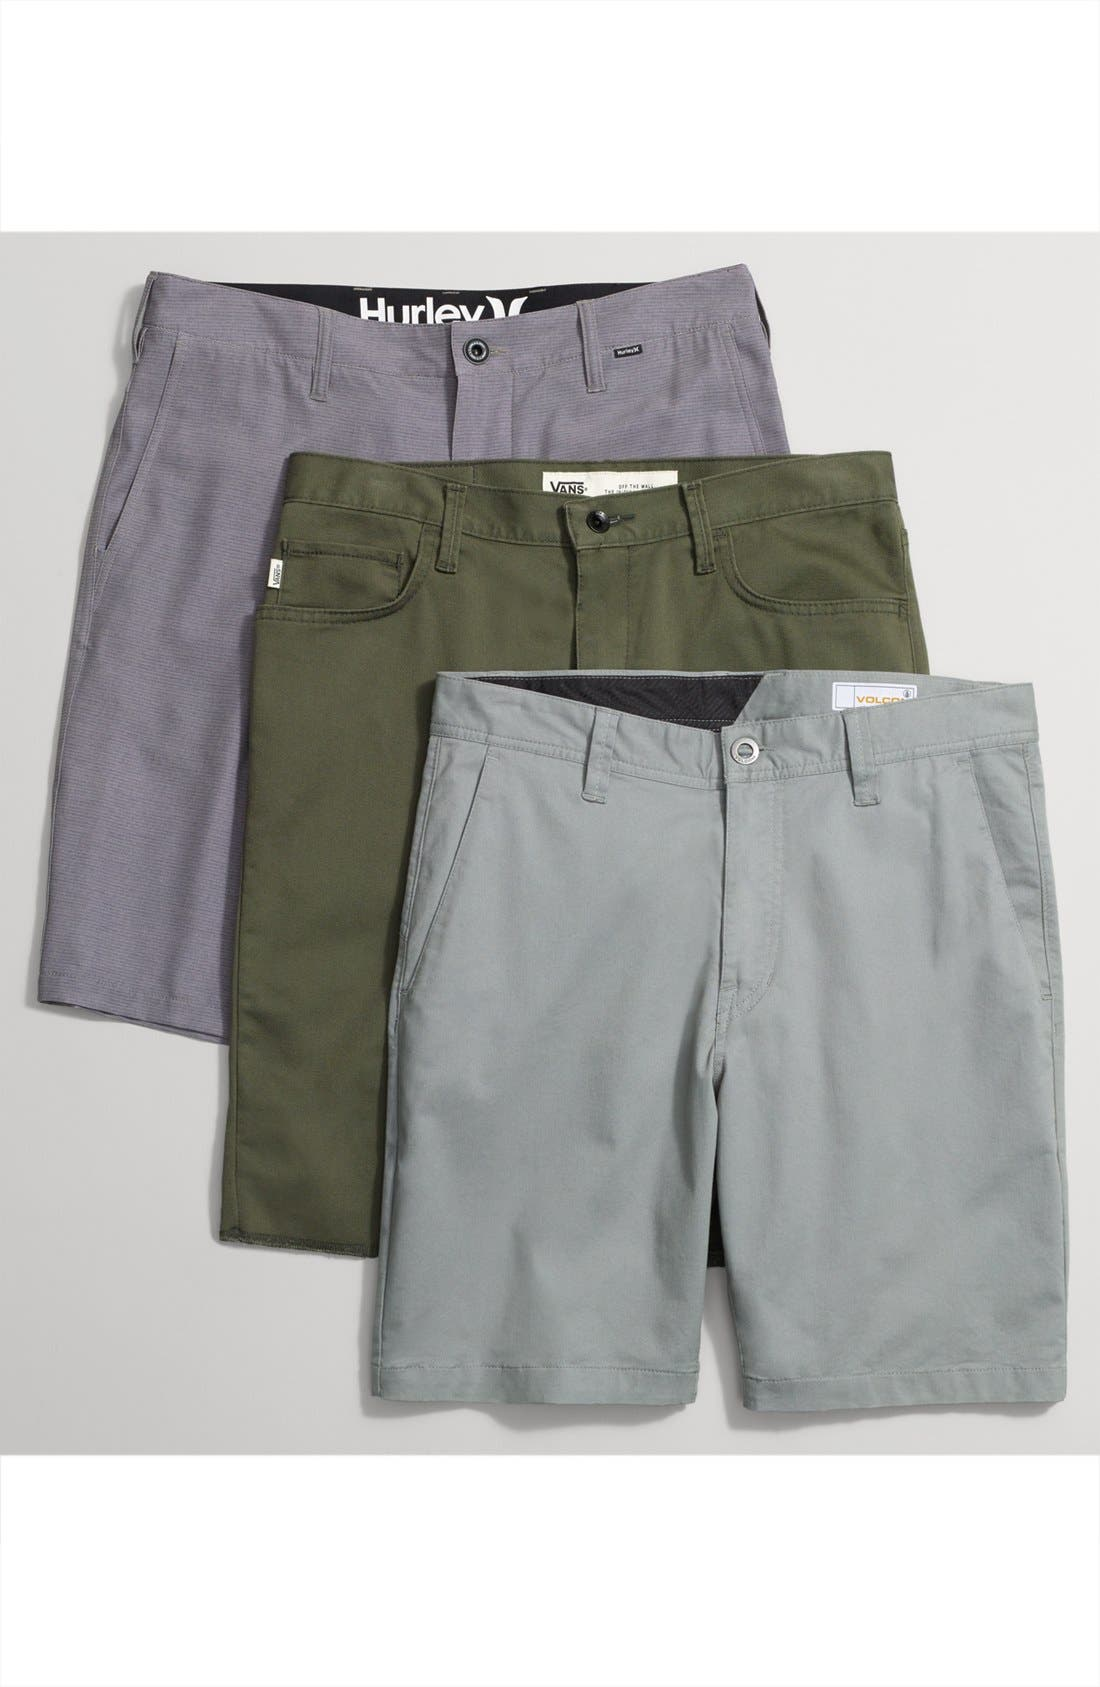 'Covina II - Anthony Van Engelen' Twill Shorts,                             Alternate thumbnail 6, color,                             001